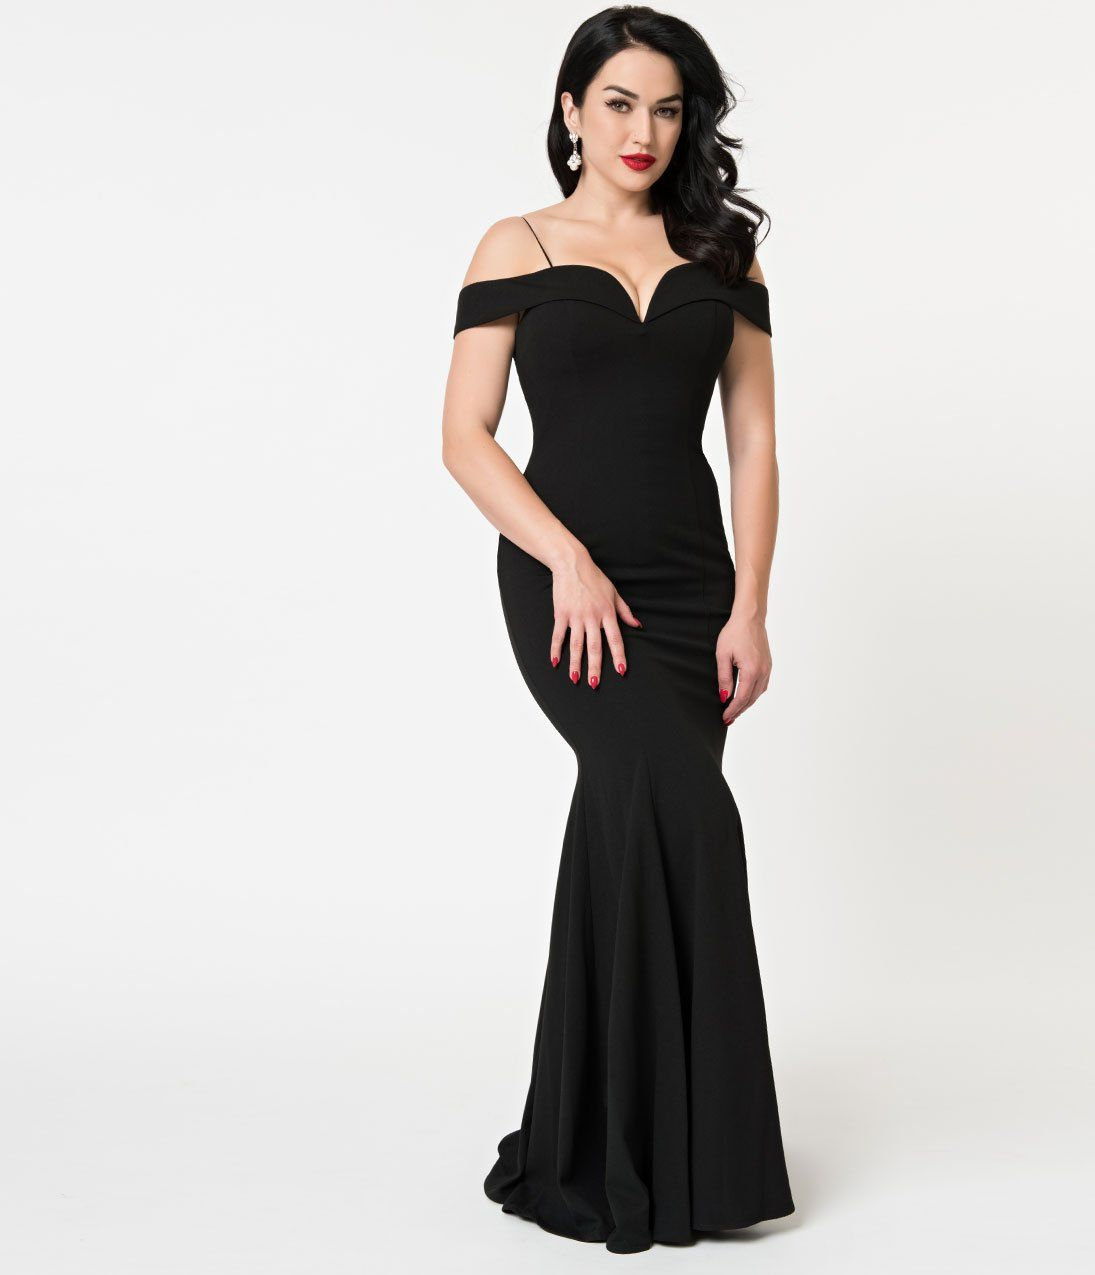 3c7a9e3d61701 Black Bateau Neckline Mermaid Style Full Length Gown – Unique Vintage